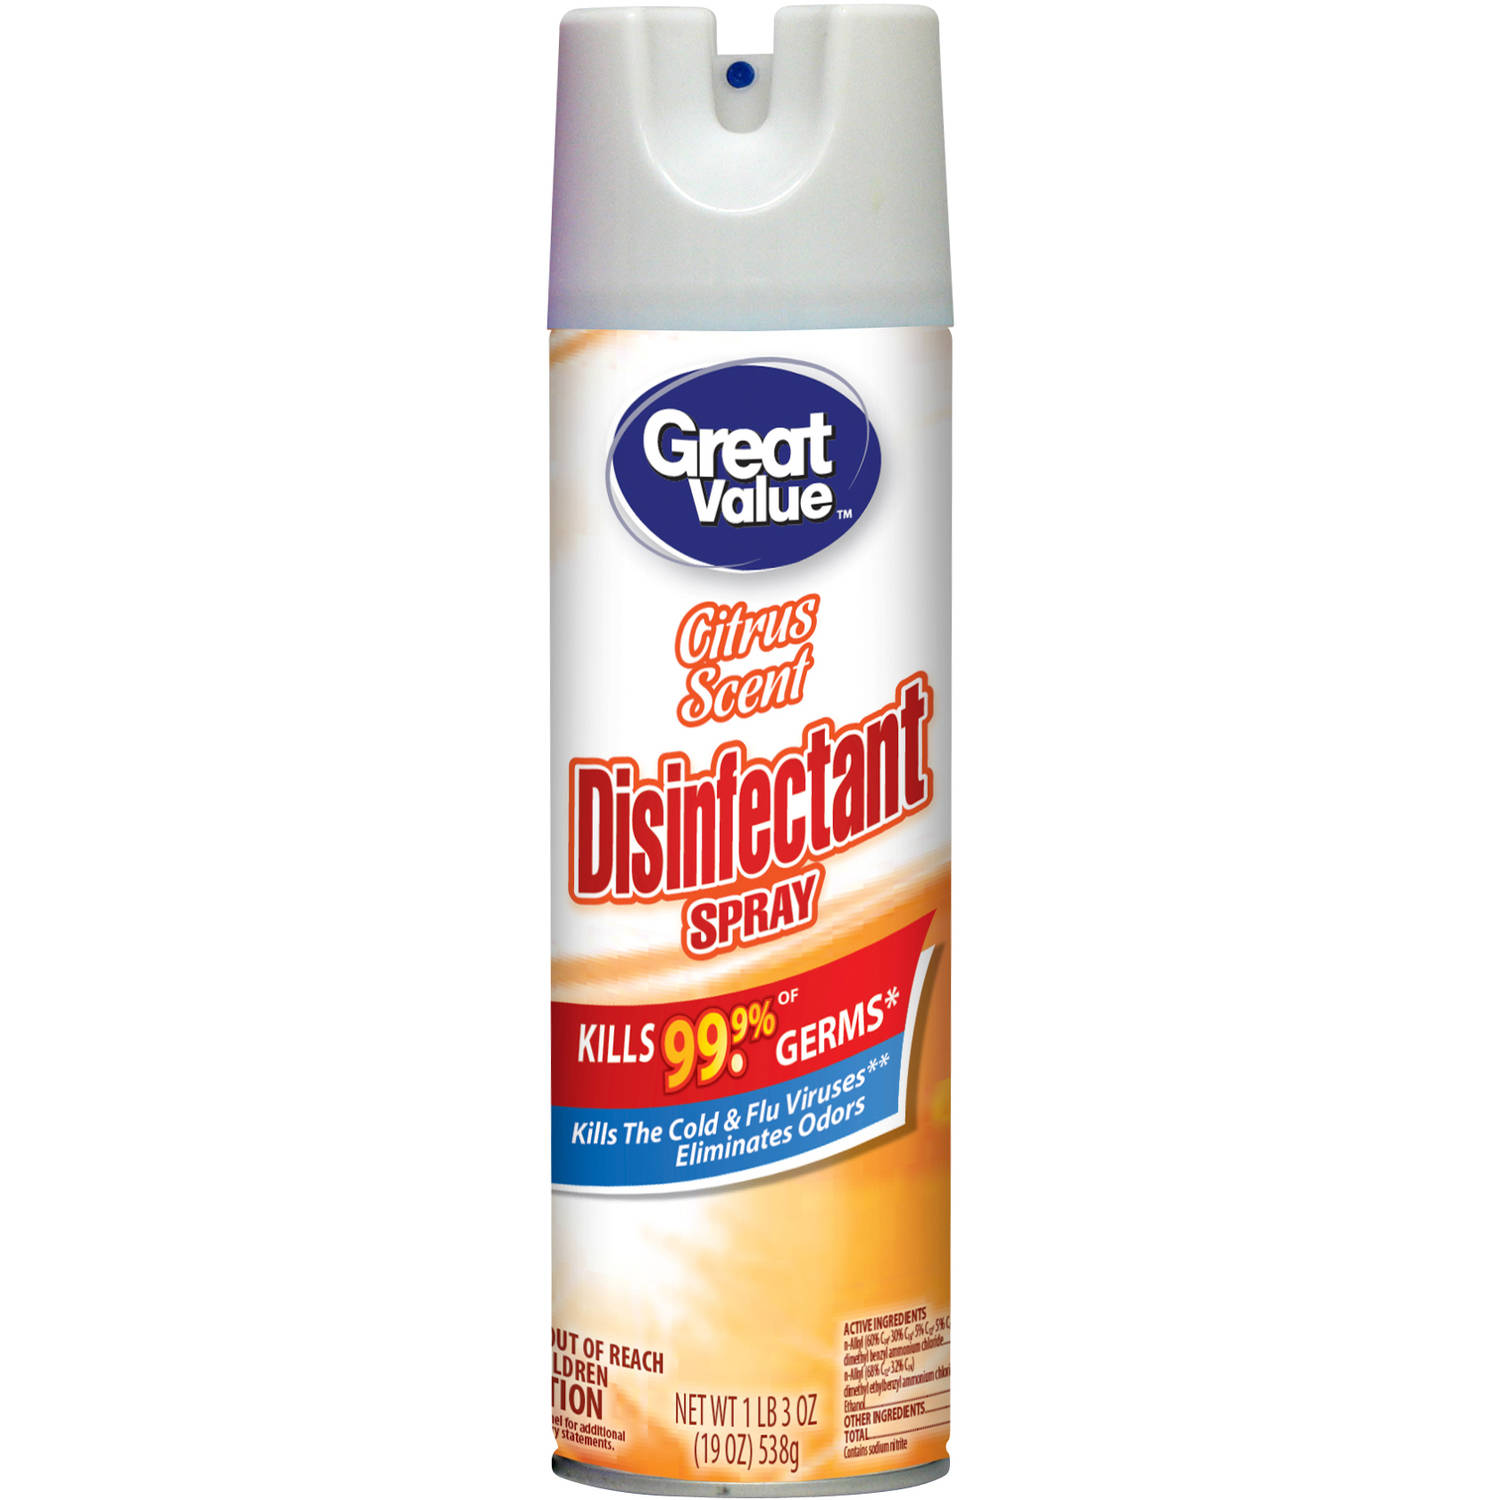 Great Value Citrus Scent Disinfectant Spray, 19 oz